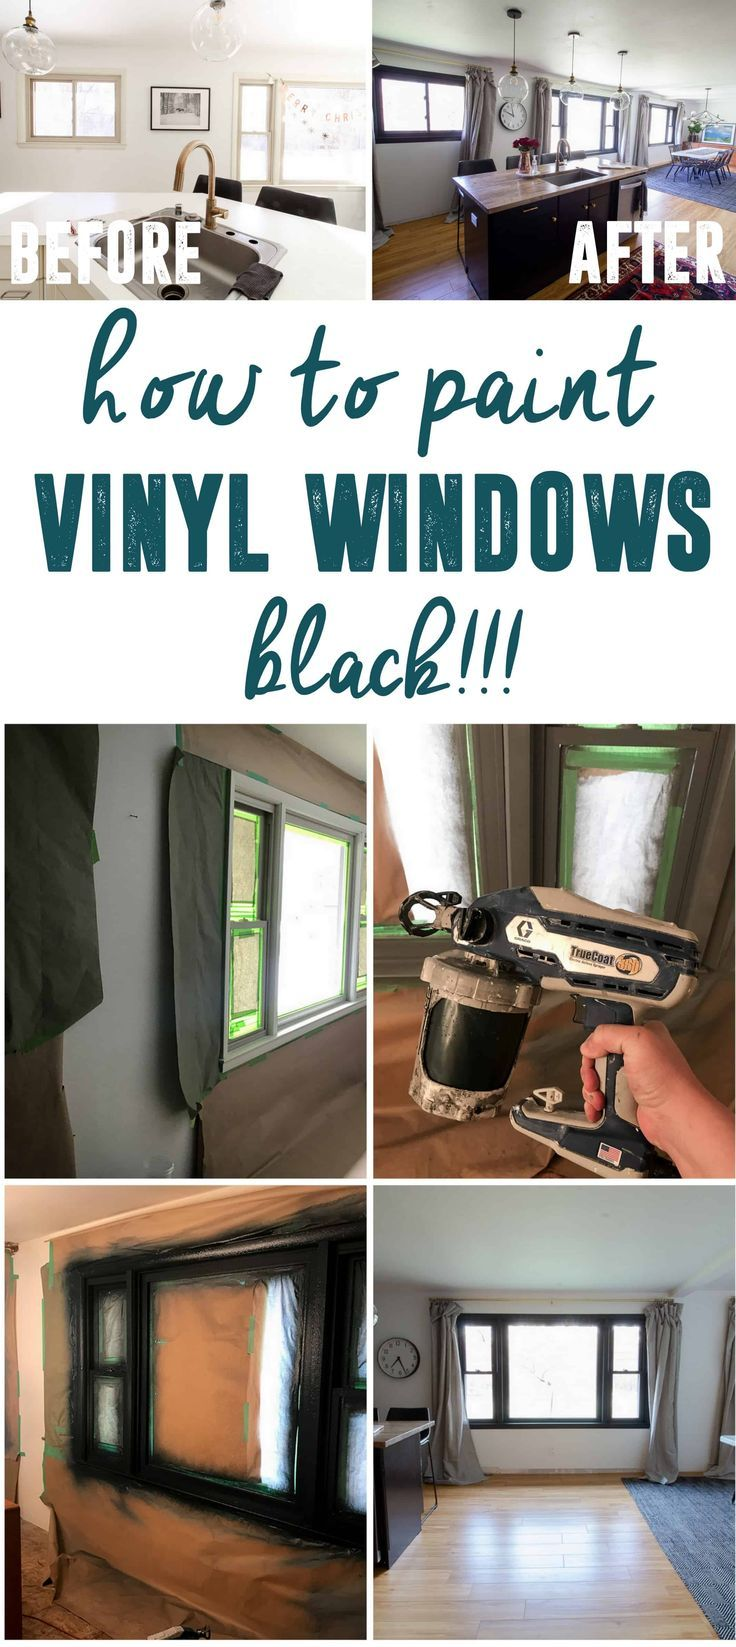 Painting Vinyl Windows Black How We Did It Vinyl Window Frame Painting Vinyl Windows Window Vinyl